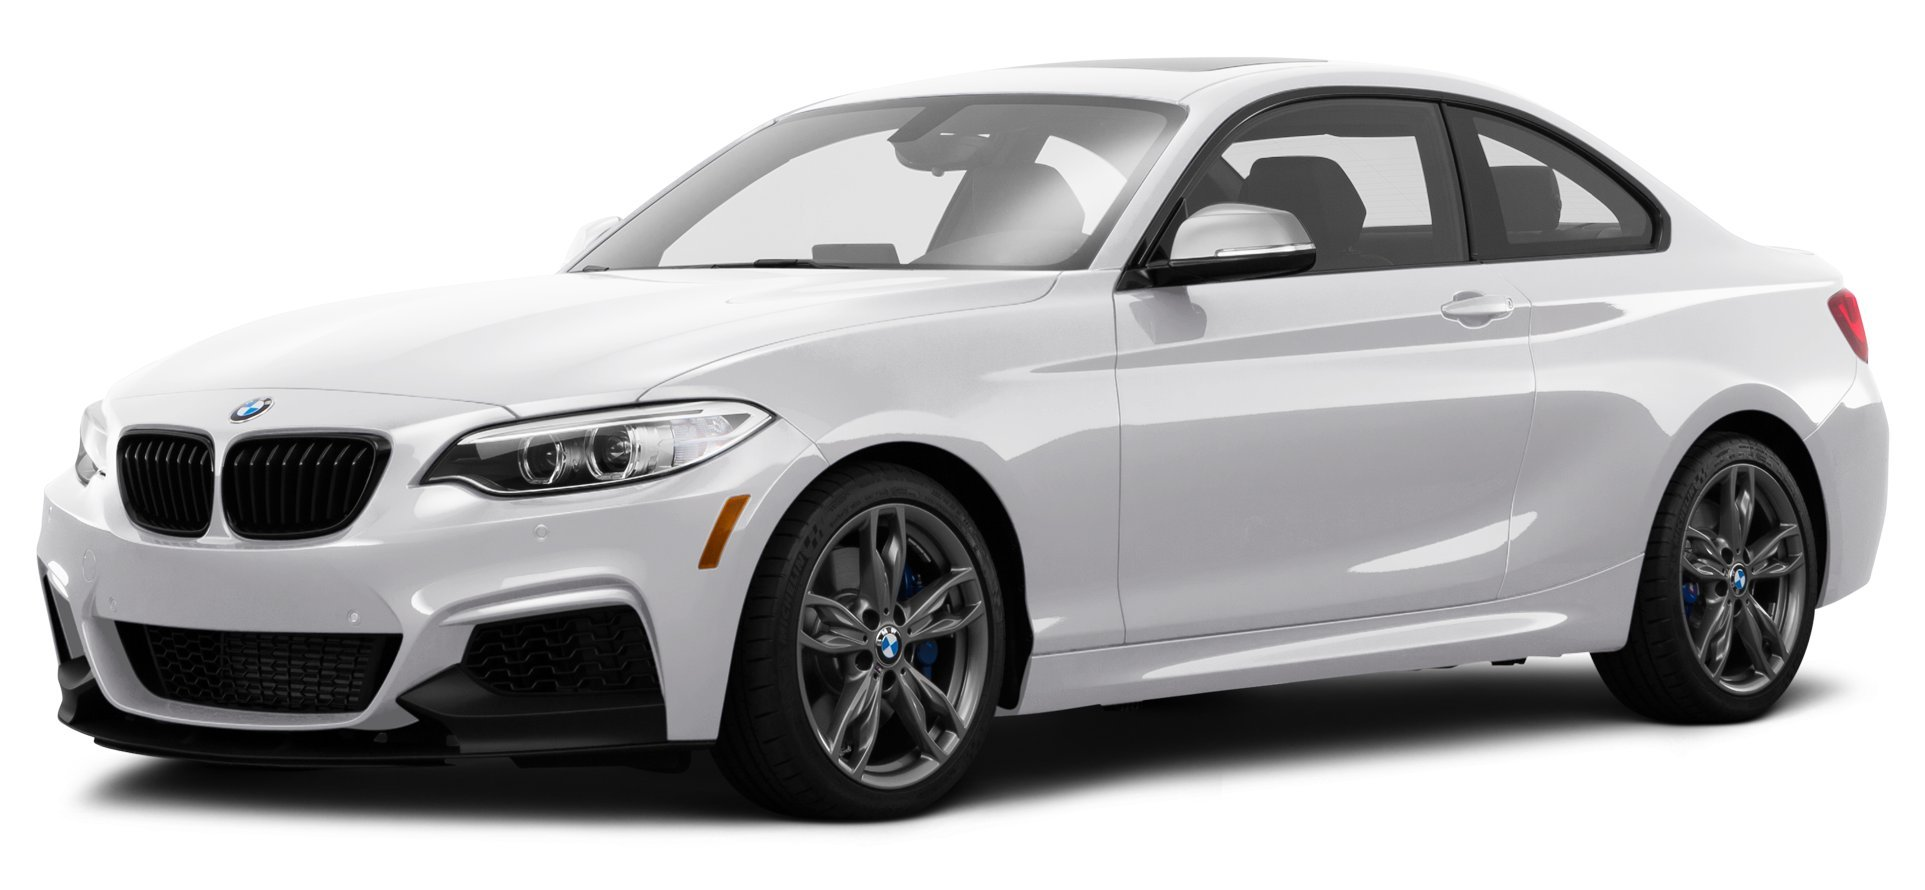 Amazon.com: 2016 BMW M2 Reviews, Images, and Specs: Vehicles